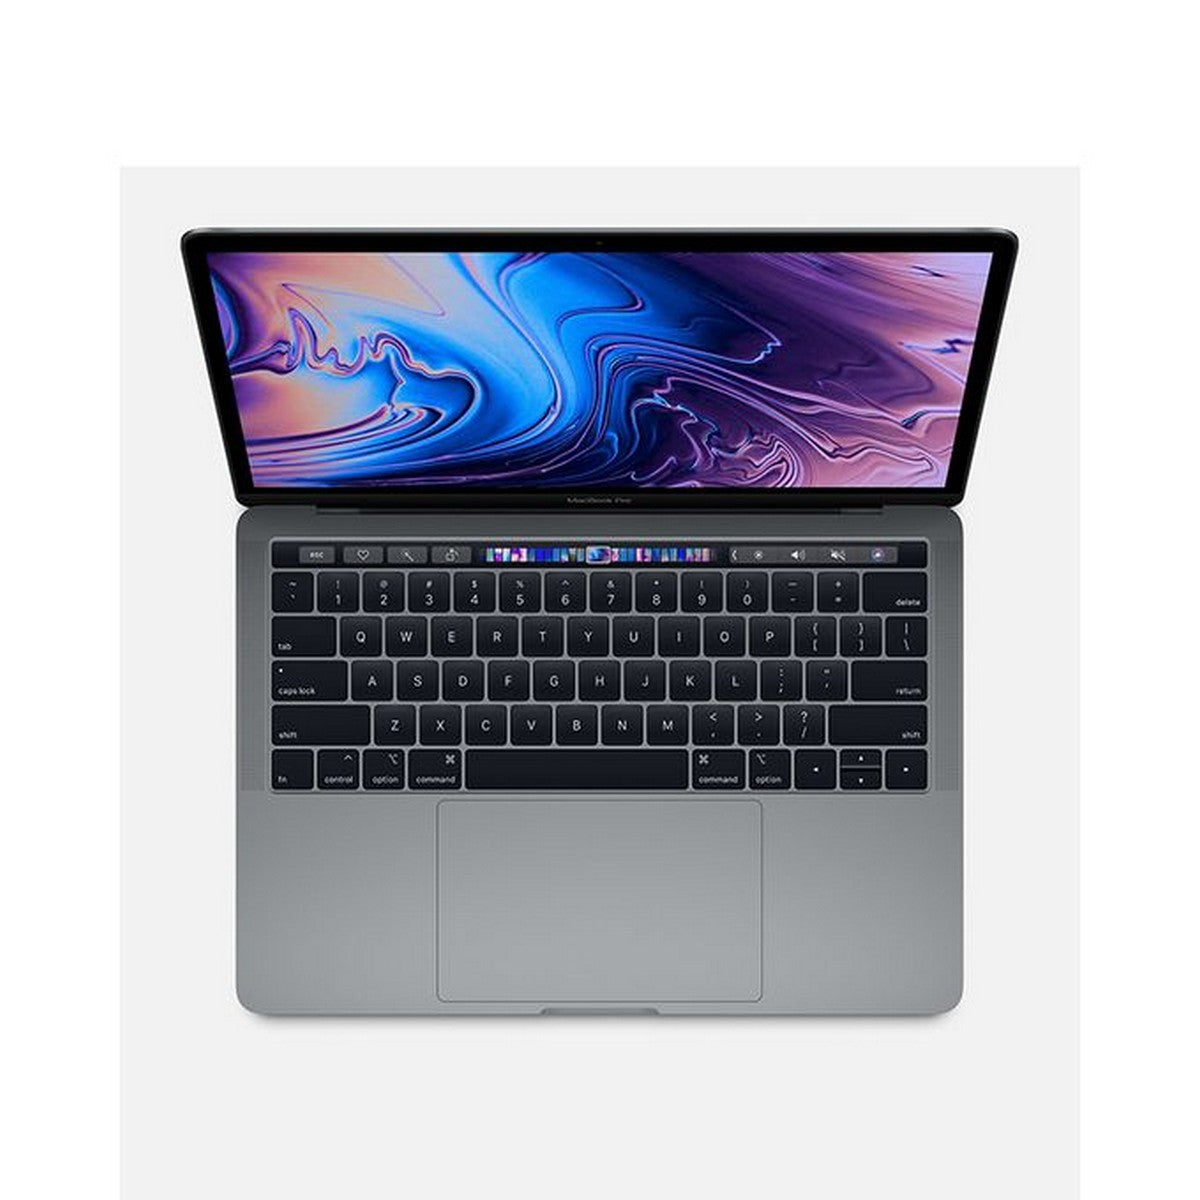 Apple MacBook Pro 13 With Touch Bar Laptop (Mid 2019) 13.3'' Retina display , Intel Core i5 2.4GHz up to 4.1GHz with 128MB of eDRAM, 8GB RAM, Intel Iris P655 GPU, 512GB SSD, Touch ID, Model:MV992LL/A, MacOS, English Keyboard, Silver